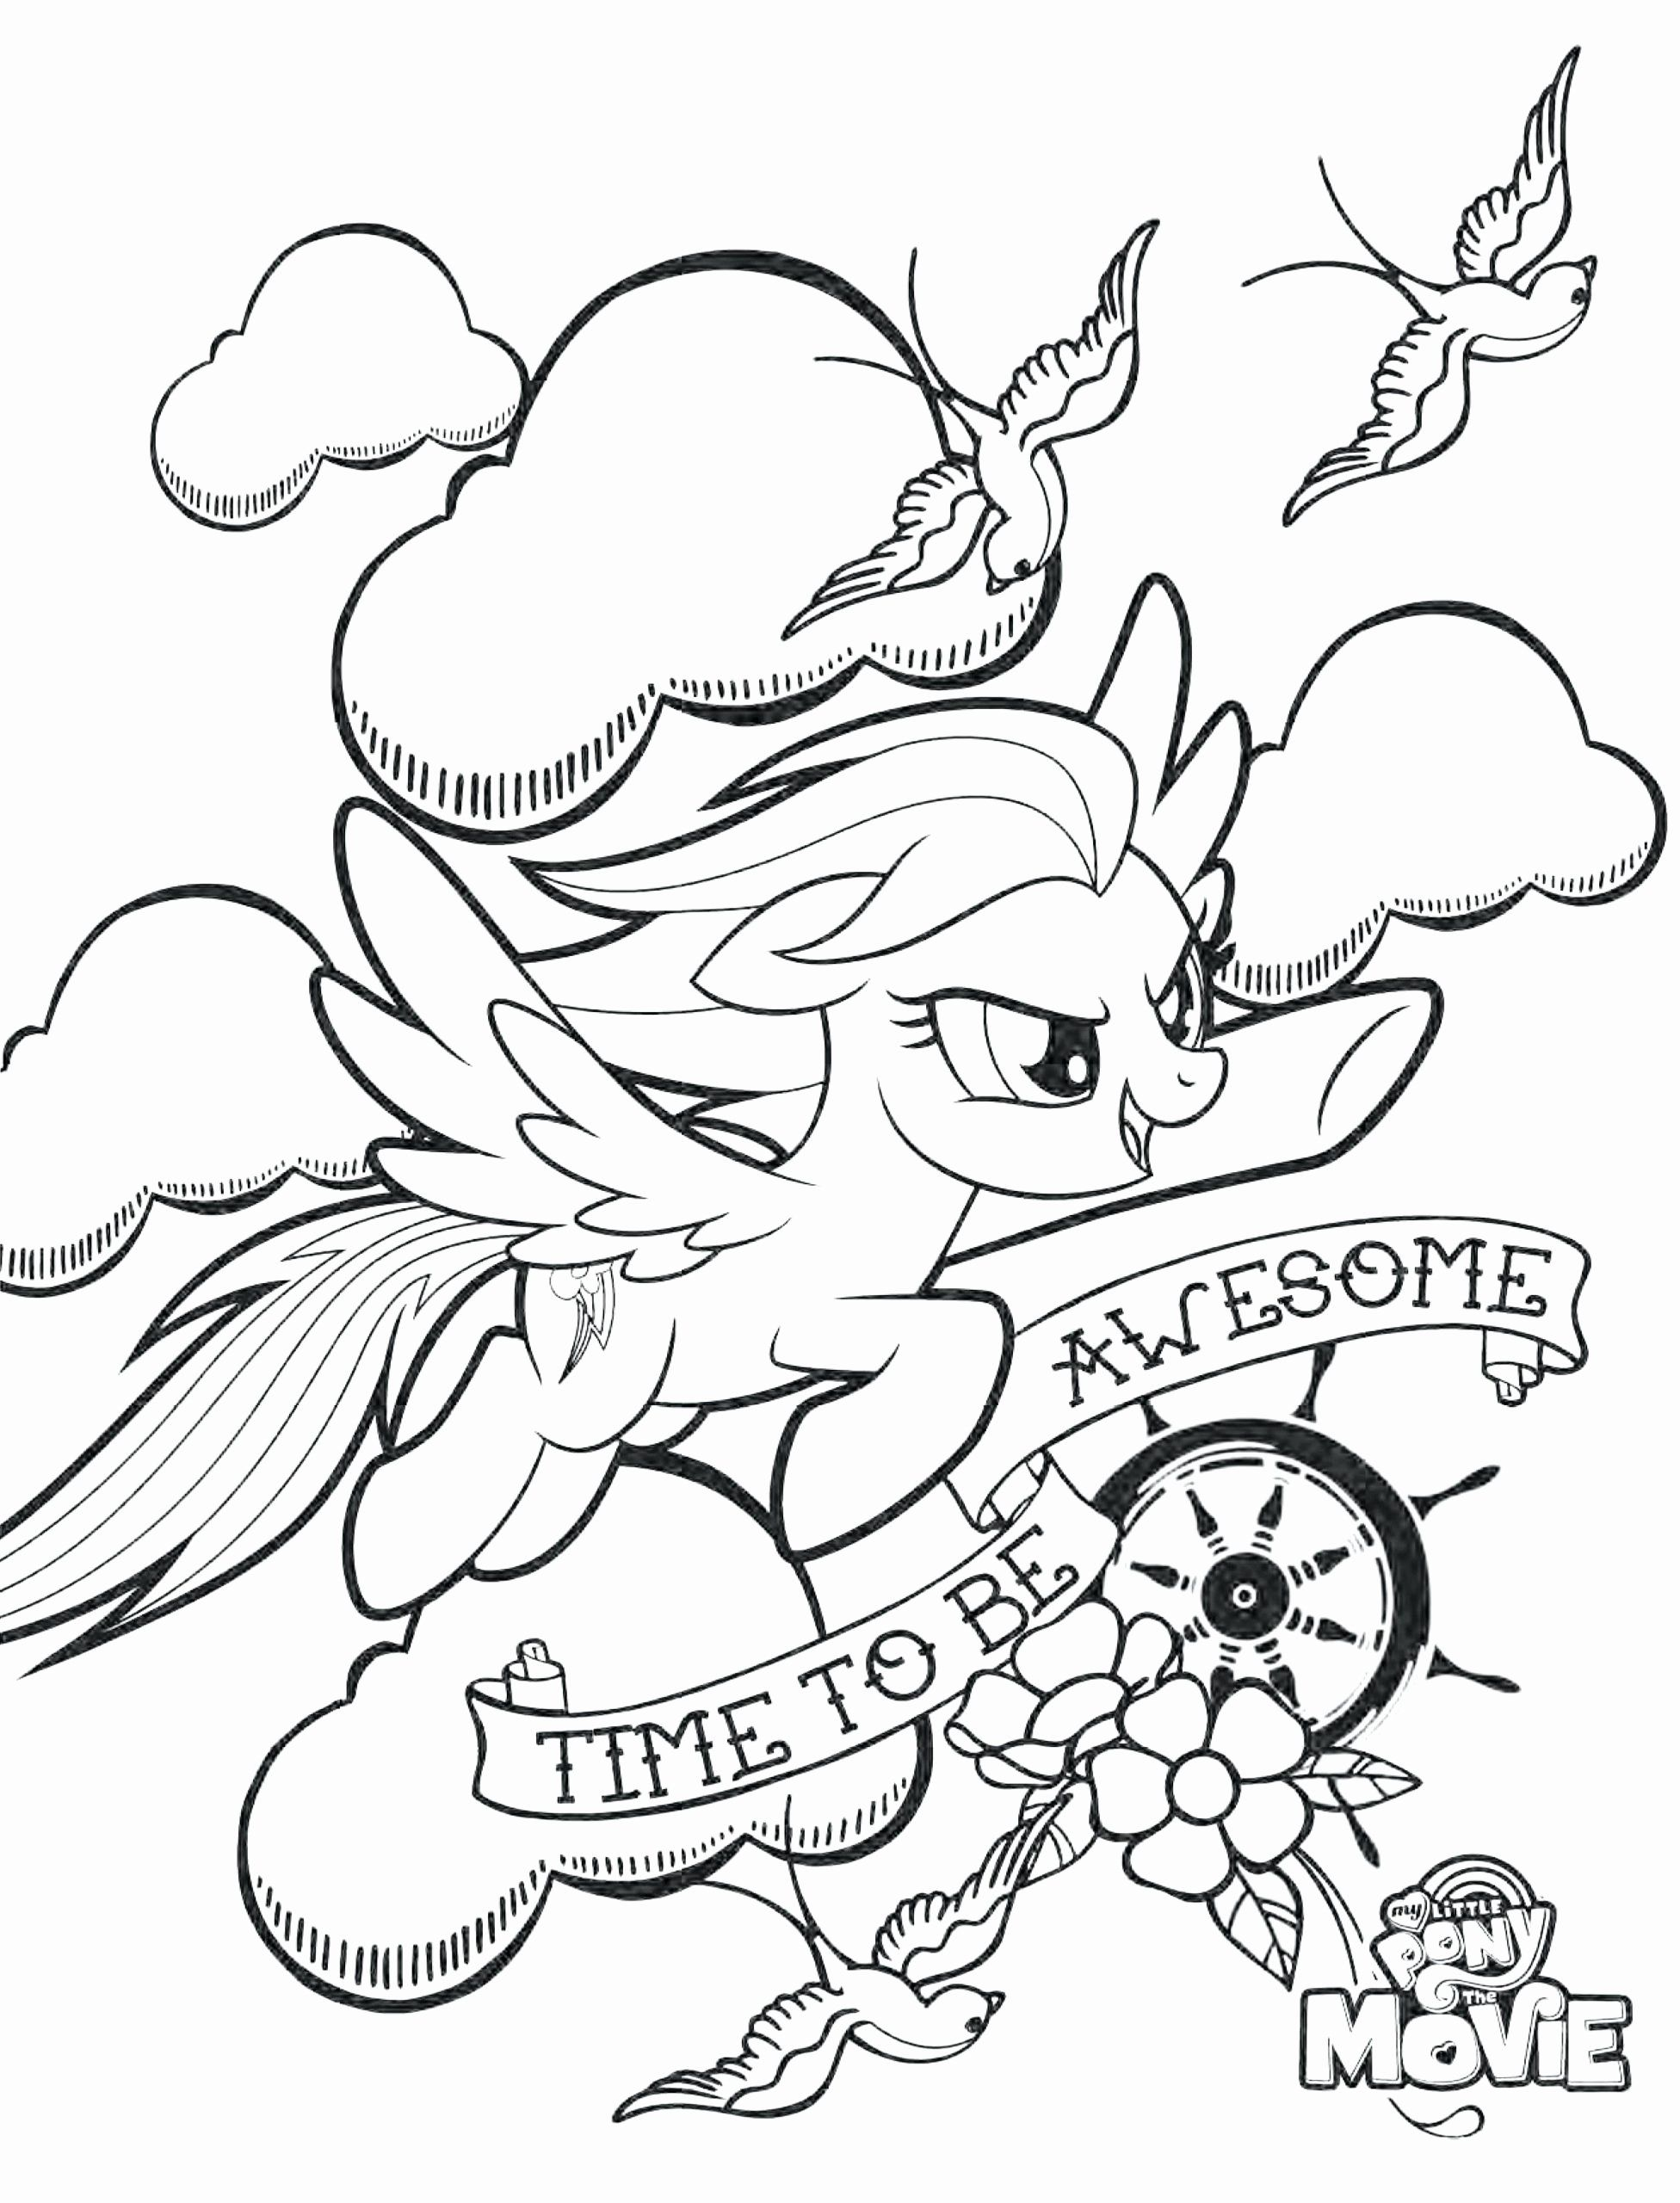 My Little Pony Coloring Pages Printable New 25 Most Beautiful Pony Coloring Pages Pinkie In 2020 My Little Pony Coloring Unicorn Coloring Pages Mermaid Coloring Pages